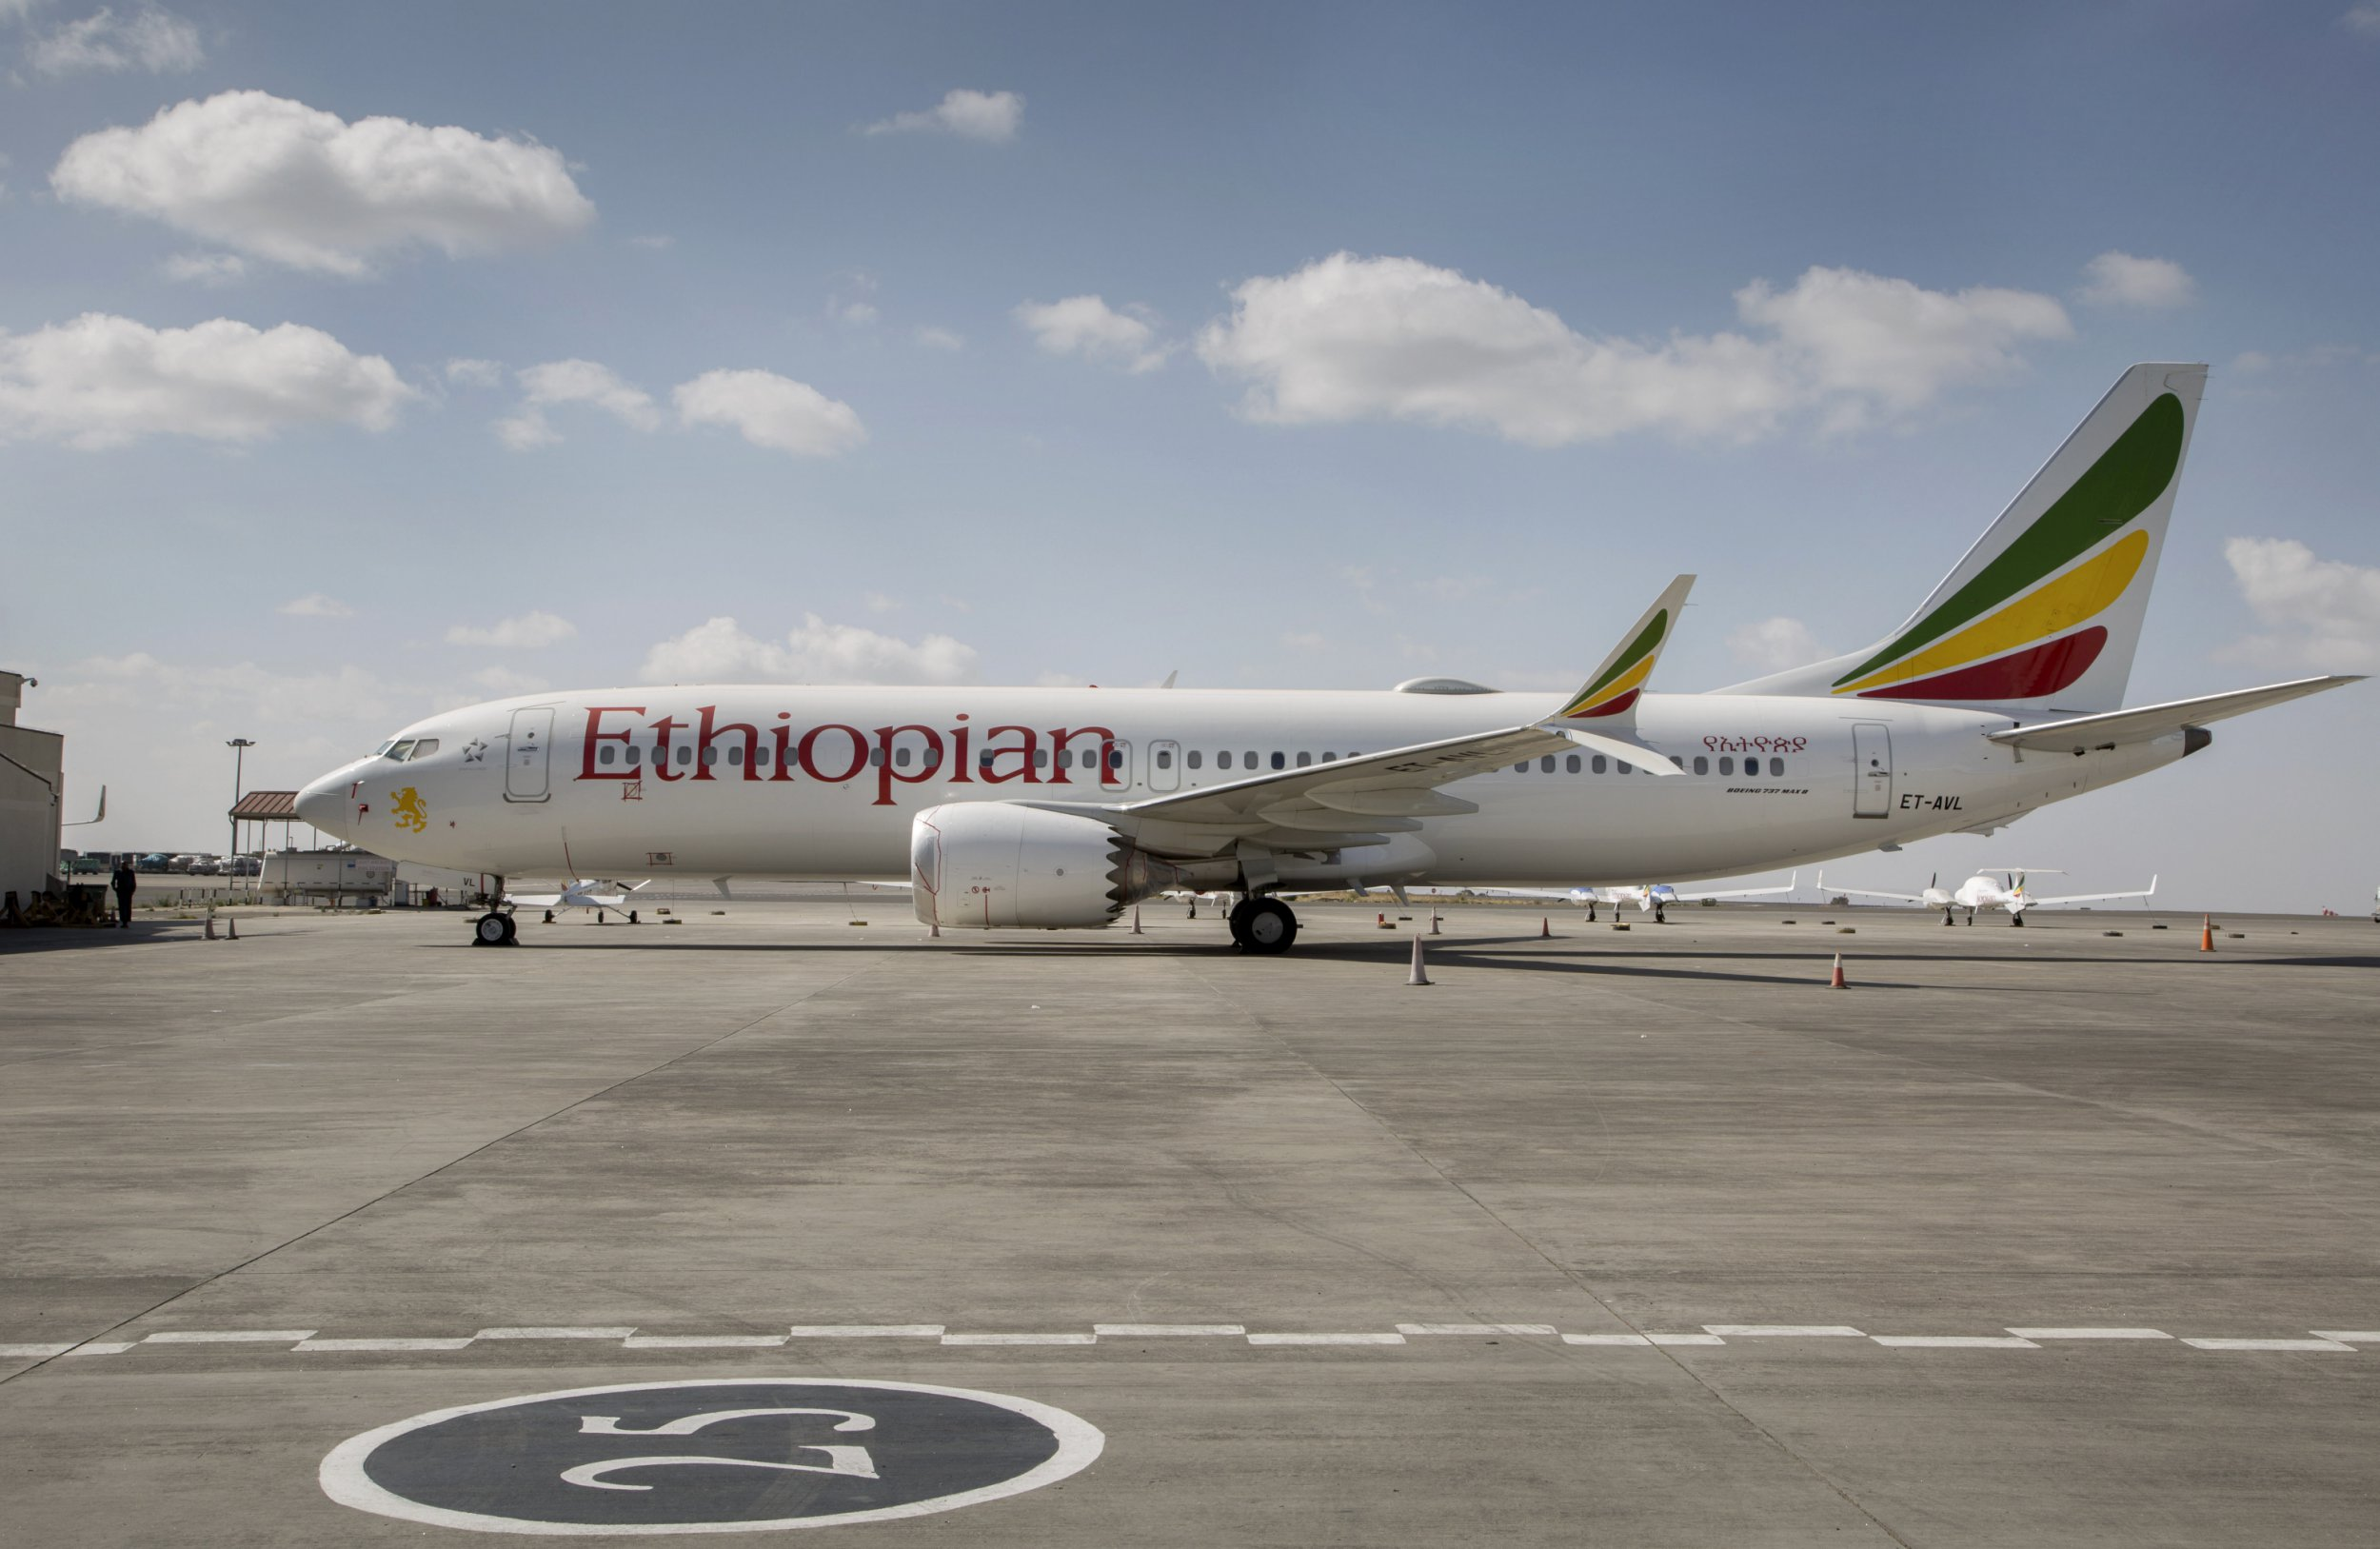 FILE - In tis Saturday, March 23, 2019 file photo, an Ethiopian Airlines Boeing 737 Max 8 sits grounded at Bole International Airport in Addis Ababa, Ethiopia. Pilots of the Ethiopian Airlines flight encountered problems with their new Boeing jetliner from nearly the moment they roared down the runway and took off. A preliminary report on Thursday, April 4, 2019, by Ethiopian investigators reveals a minute-by-minute narrative of the gripping and confusing scene in the cockpit before the March 10 crash. (AP Photo/Mulugeta Ayene, File)